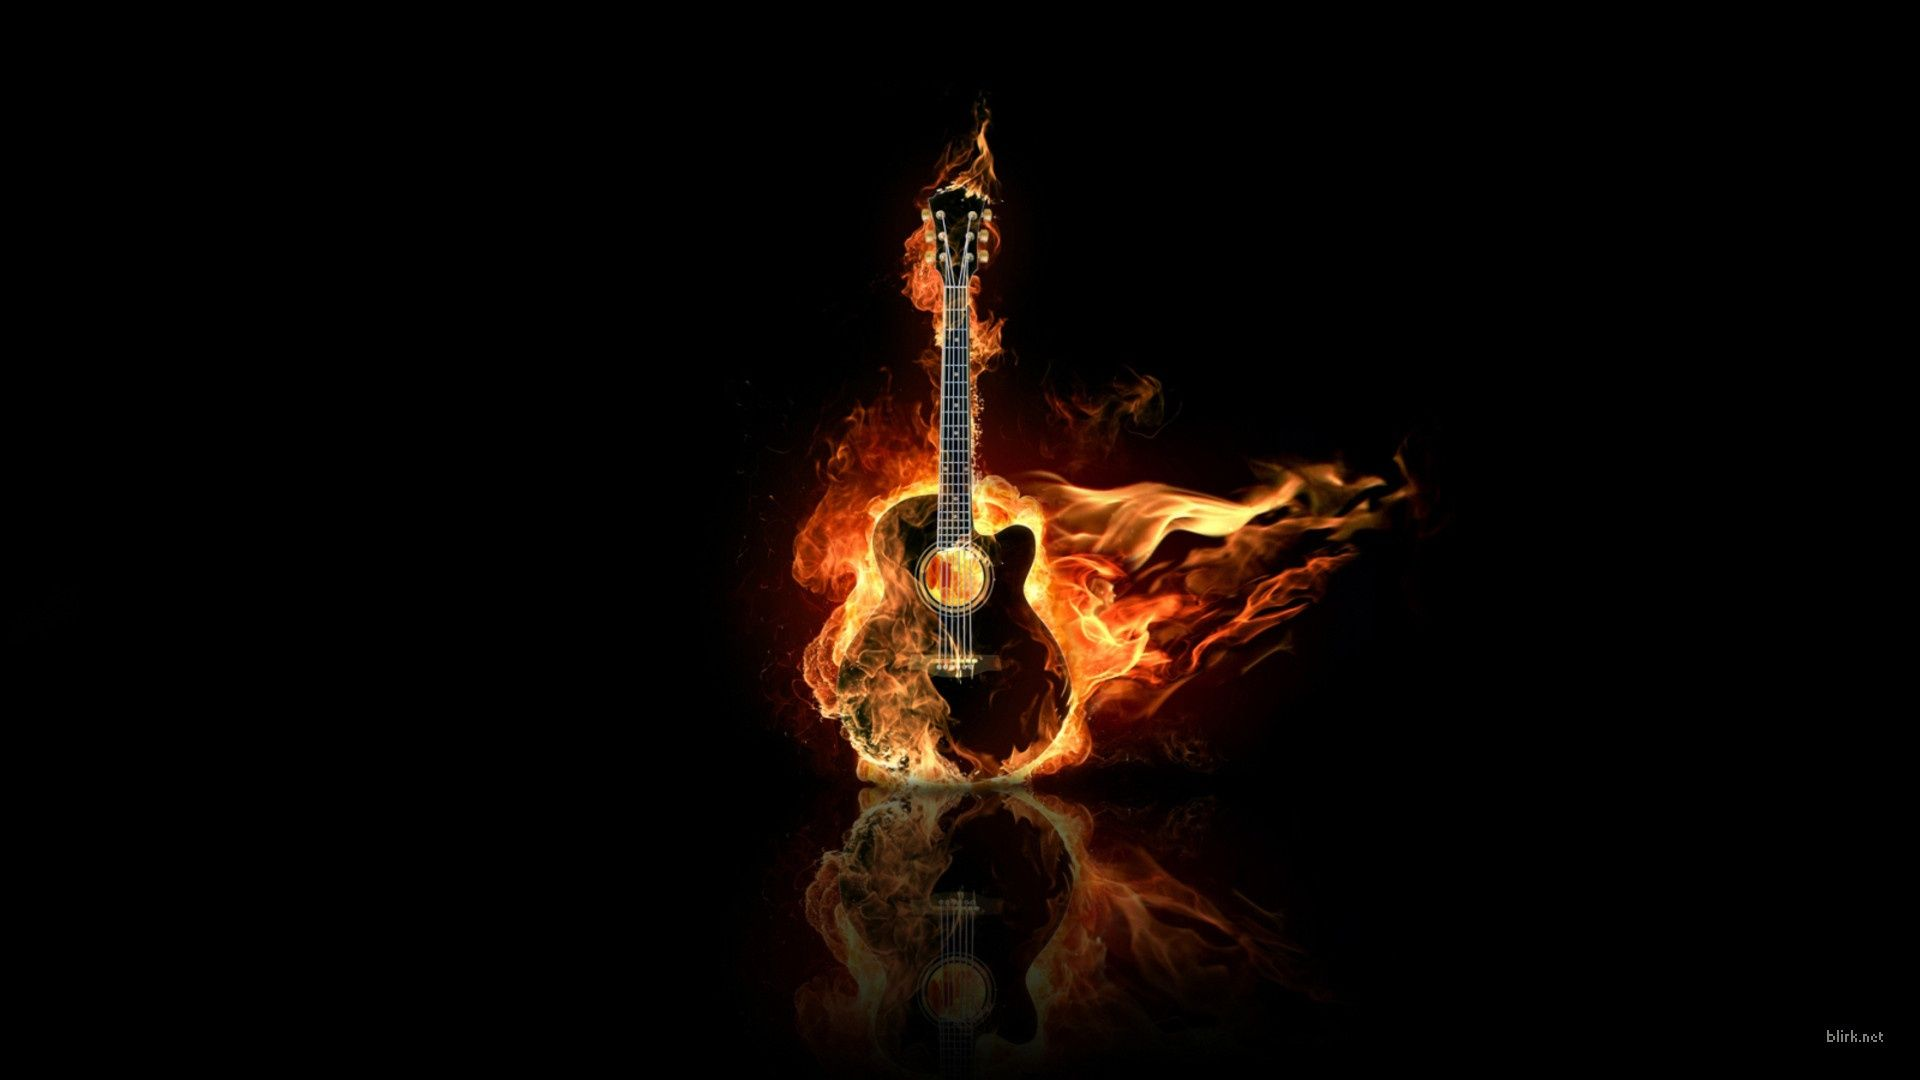 Fire Guitar Wallpaper hd